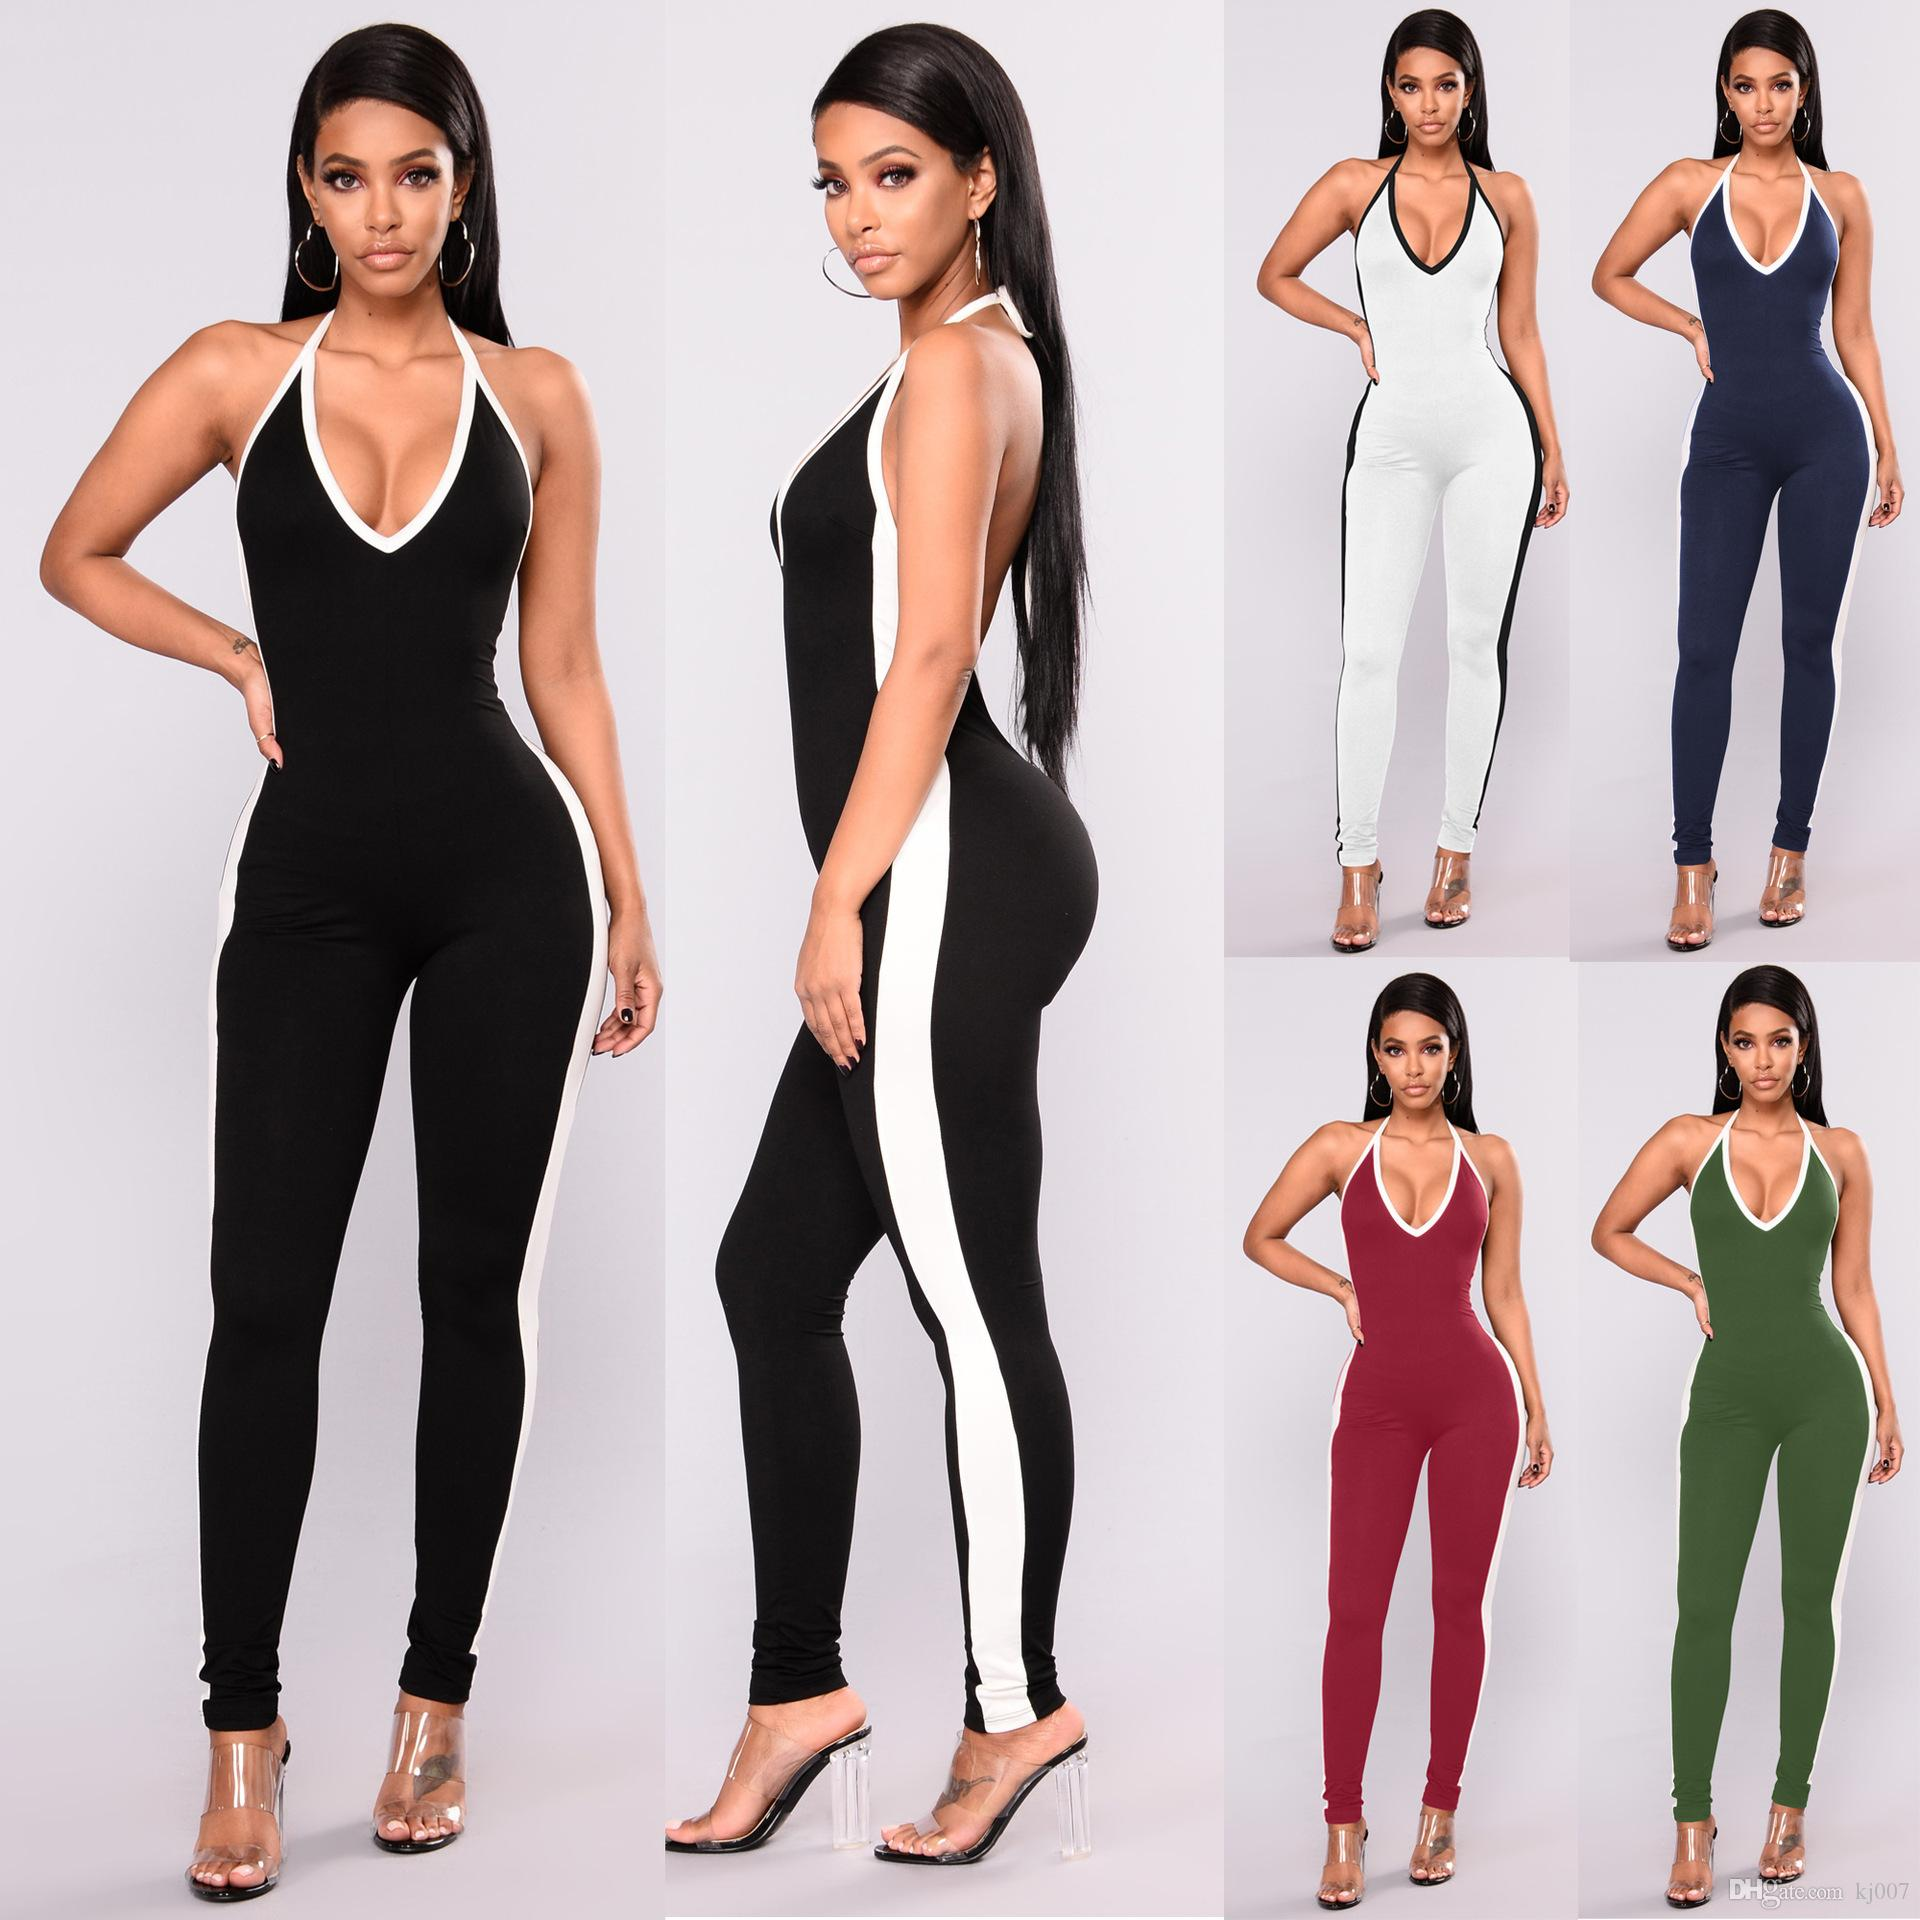 2017 New Sexy Womens Bodysuit Long Sleeve Brief Solid Bodycon Bandage Bodysuit Jumpsuit Slim Short Convenience Goods Sports & Entertainment